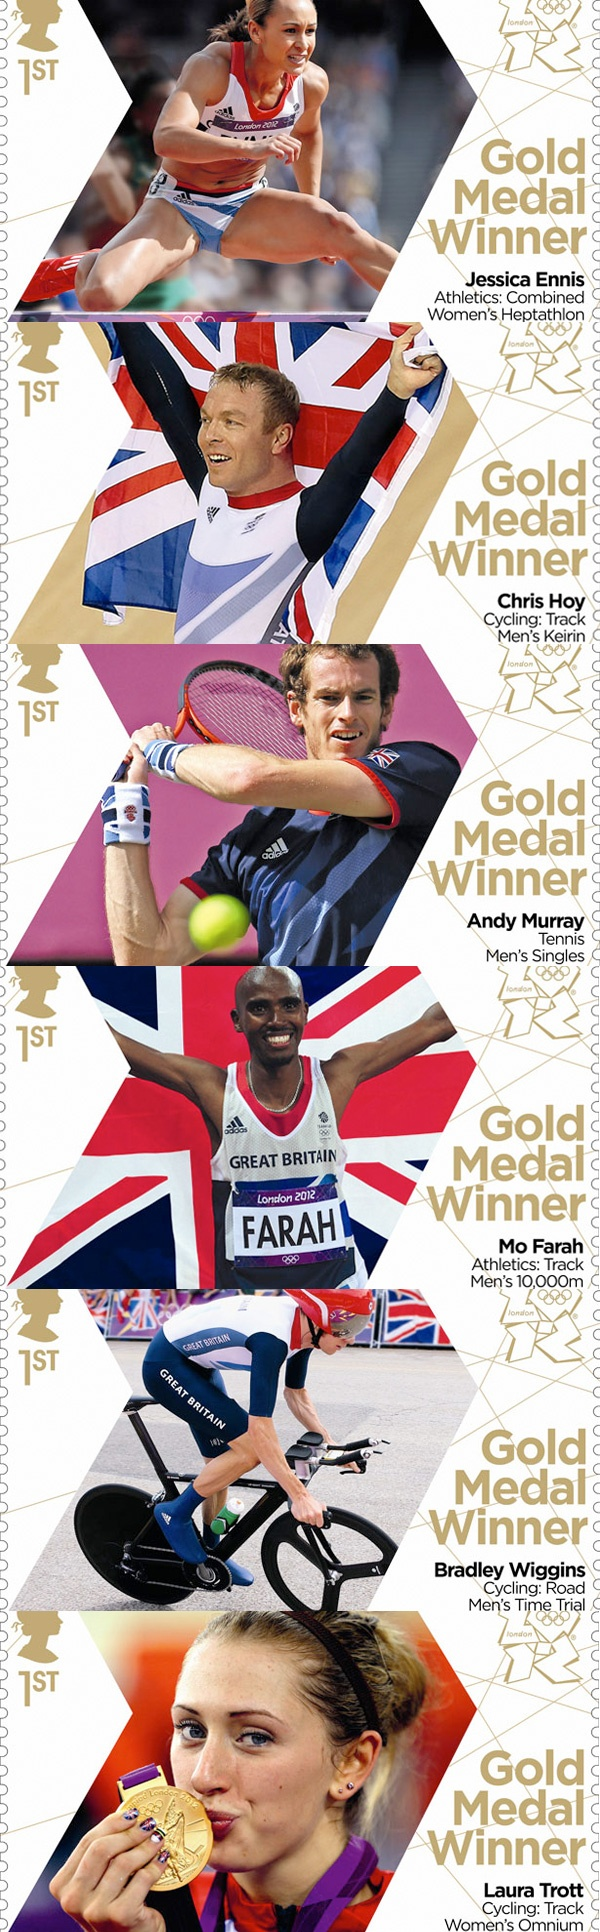 Royal Mail 1st class postage stamps celebrating the London 2012 Olympic Games British Team gold medal winners